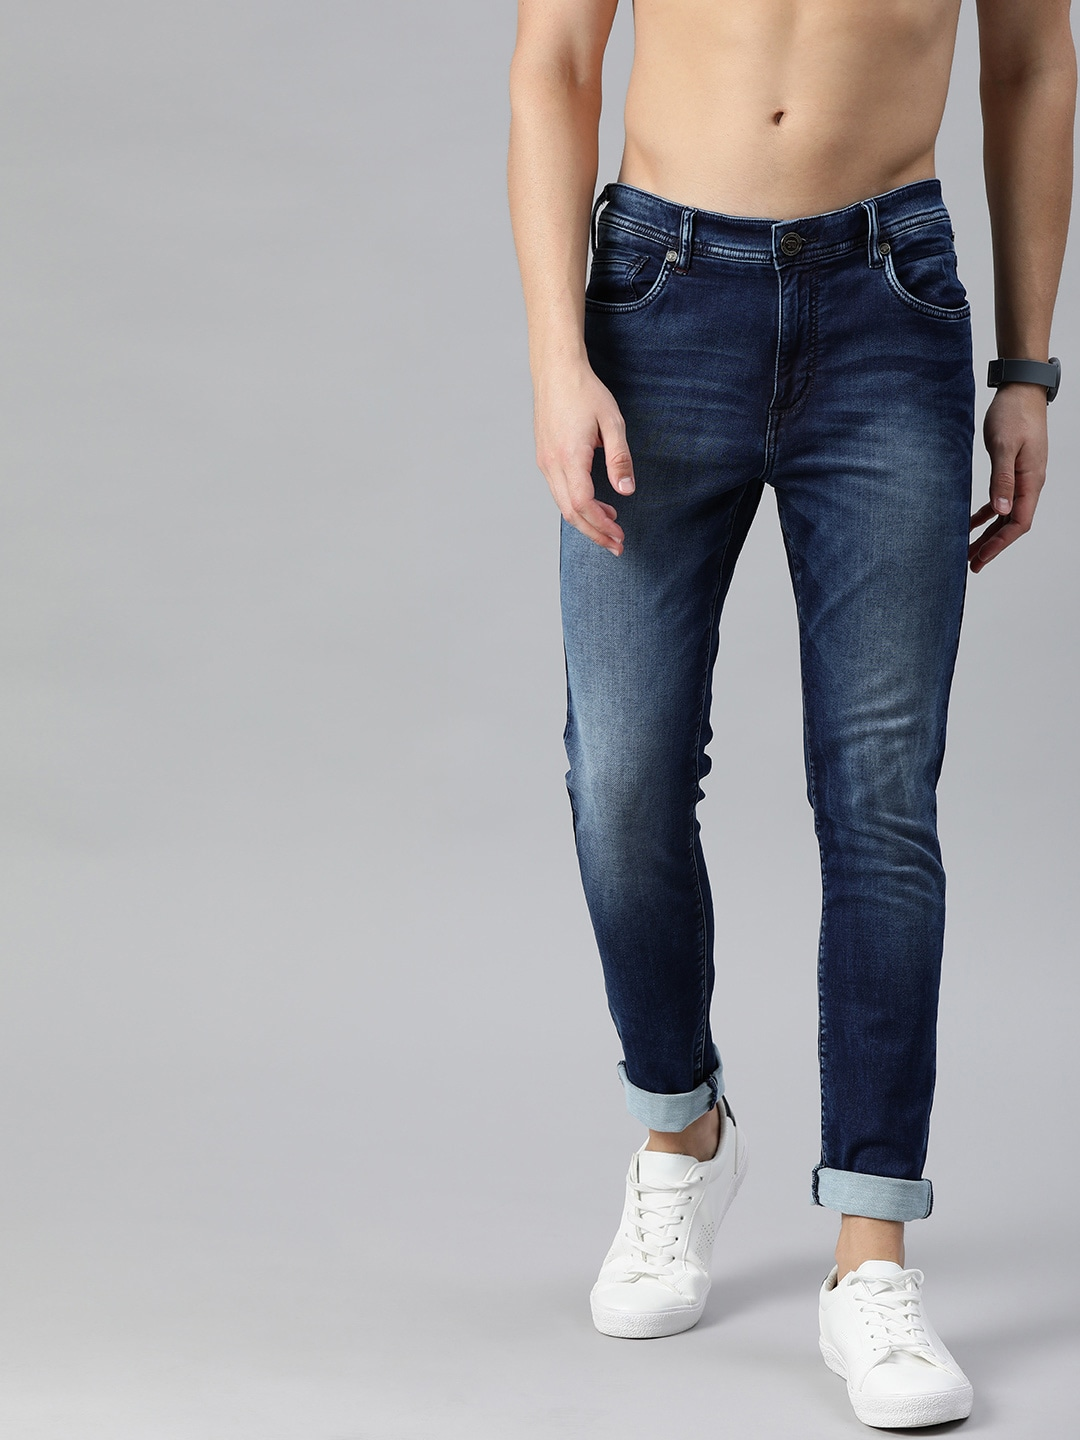 The Bear House | Men Blue Tapered Slim Fit Mid-Rise Clean Look Stretchable Jeans